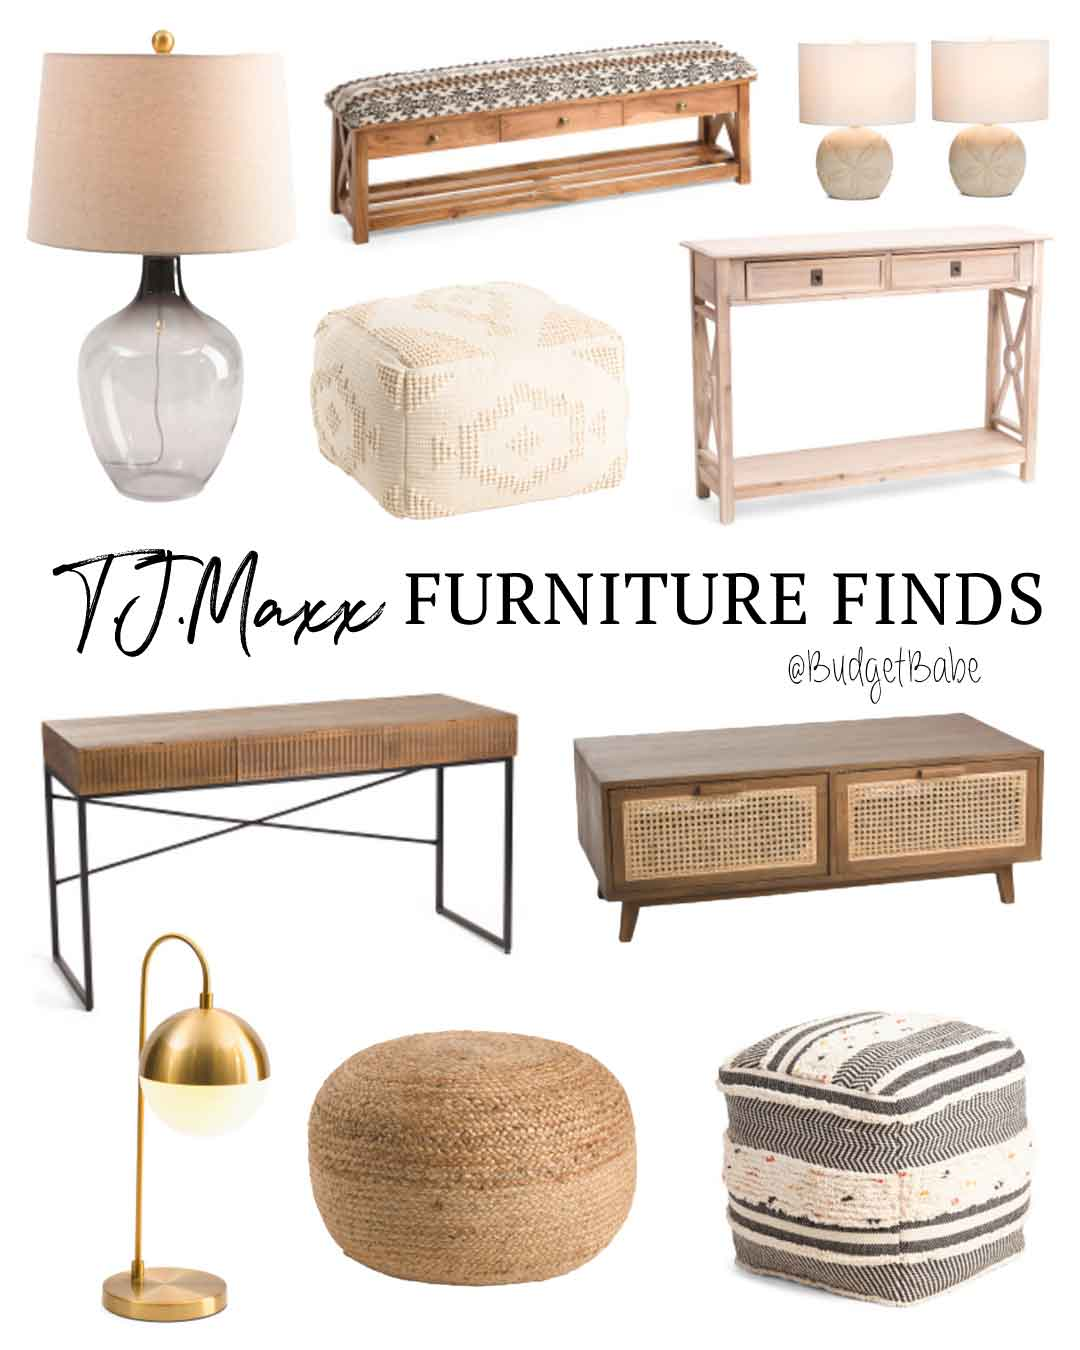 T.J.Maxx Furniture Finds